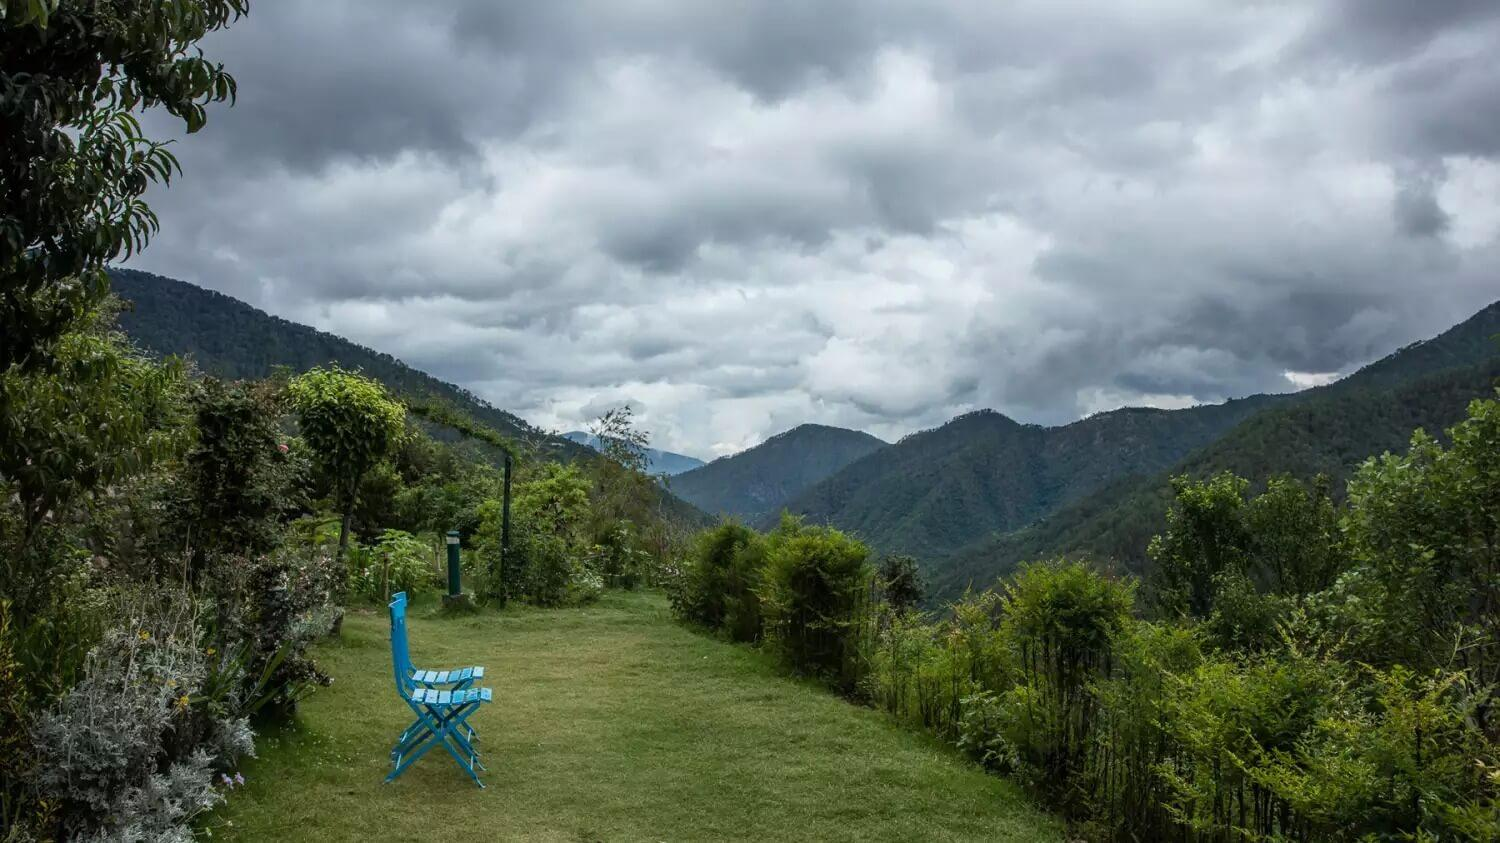 a bench in a garden overlooking the mountains